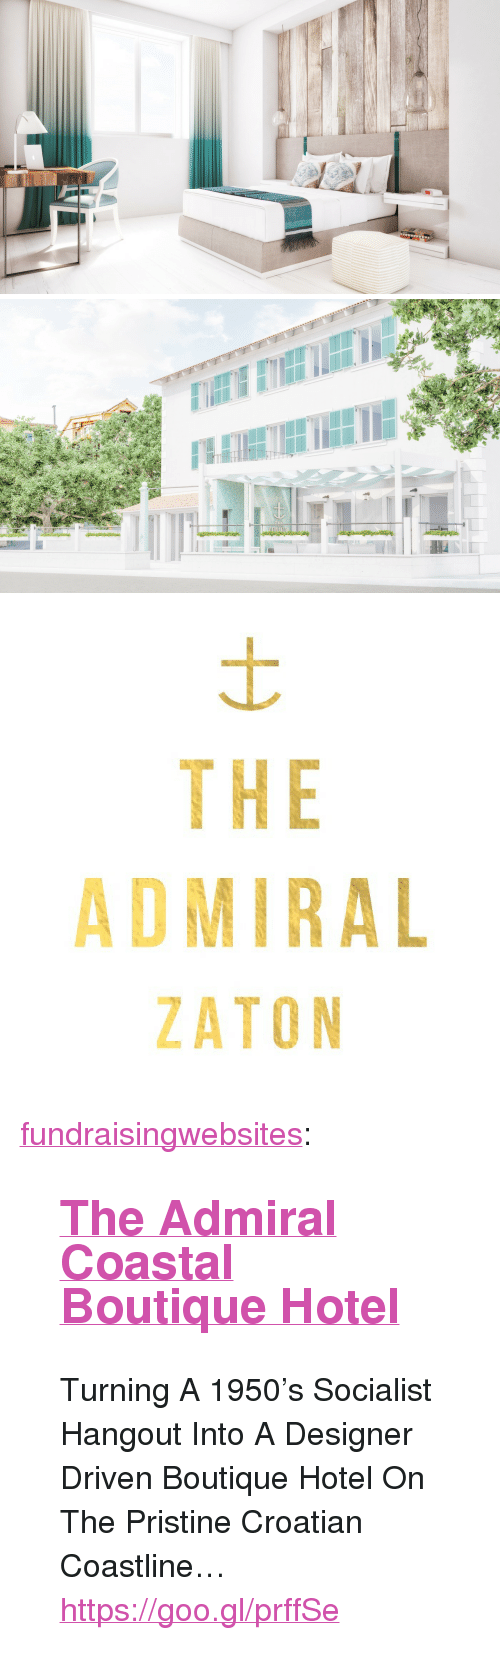 """Boutique: WWwwwNN   THE  ADMIRAL  ZATON <p><a class=""""tumblr_blog"""" href=""""http://fundraisingwebsites.tumblr.com/post/141629655186"""">fundraisingwebsites</a>:</p> <blockquote> <h2><a href=""""https://goo.gl/prffSe"""">The Admiral Coastal Boutique Hotel</a></h2> <p>  Turning A 1950's Socialist Hangout Into A Designer Driven Boutique Hotel On The Pristine Croatian Coastline…</p> <p><a href=""""https://goo.gl/prffSe"""">https://goo.gl/prffSe</a><br/></p> </blockquote>"""